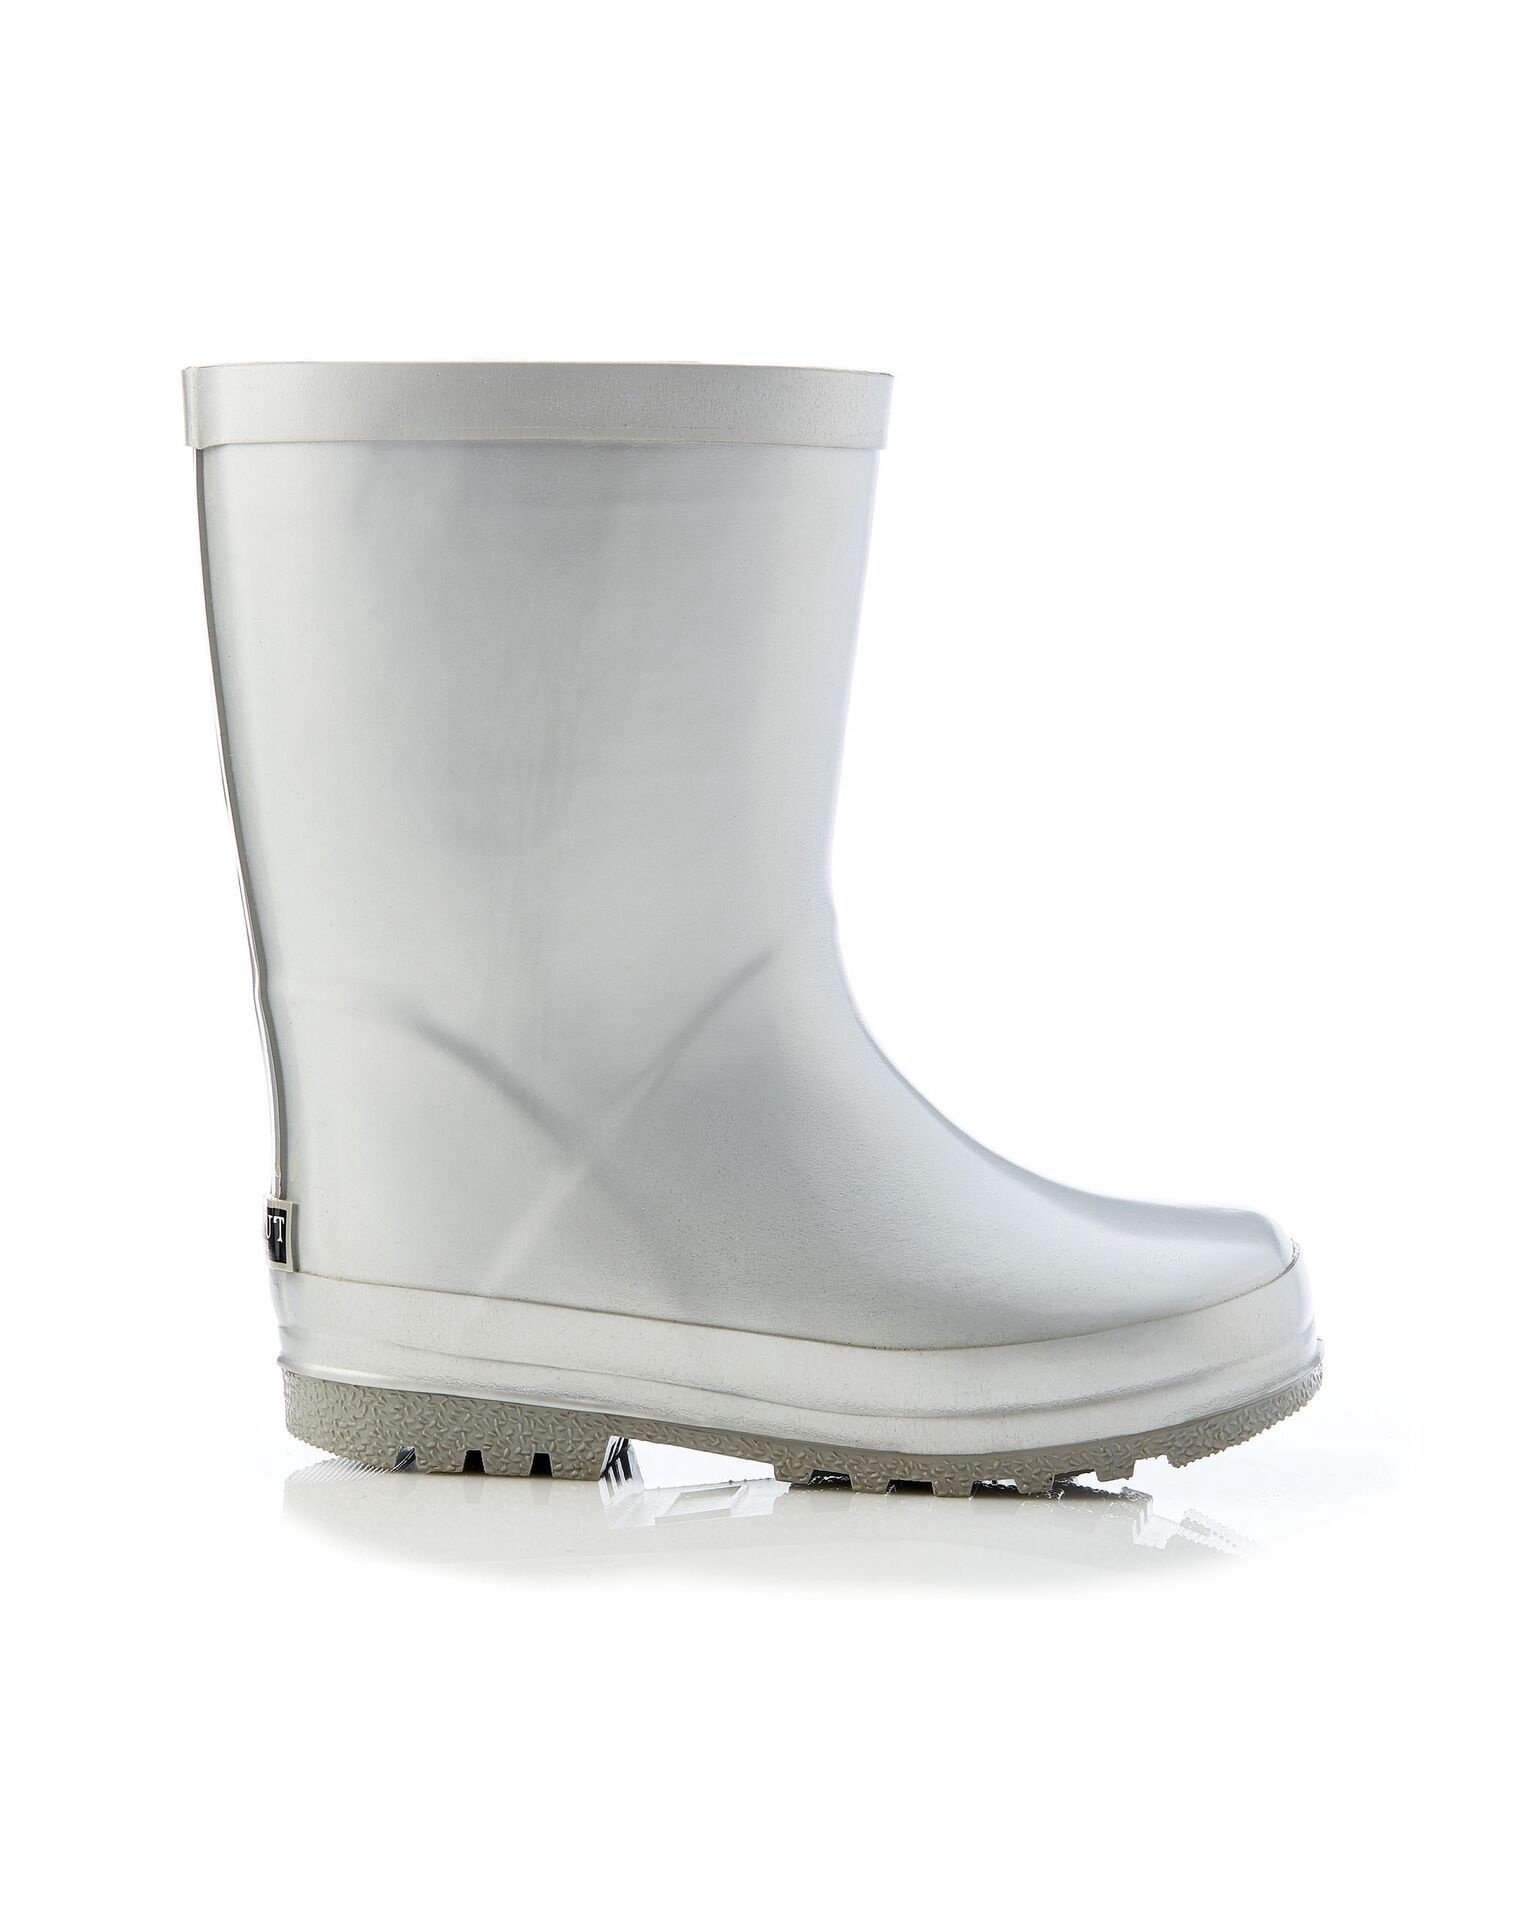 Walnut Astrid Metallic Gumboot - Silver